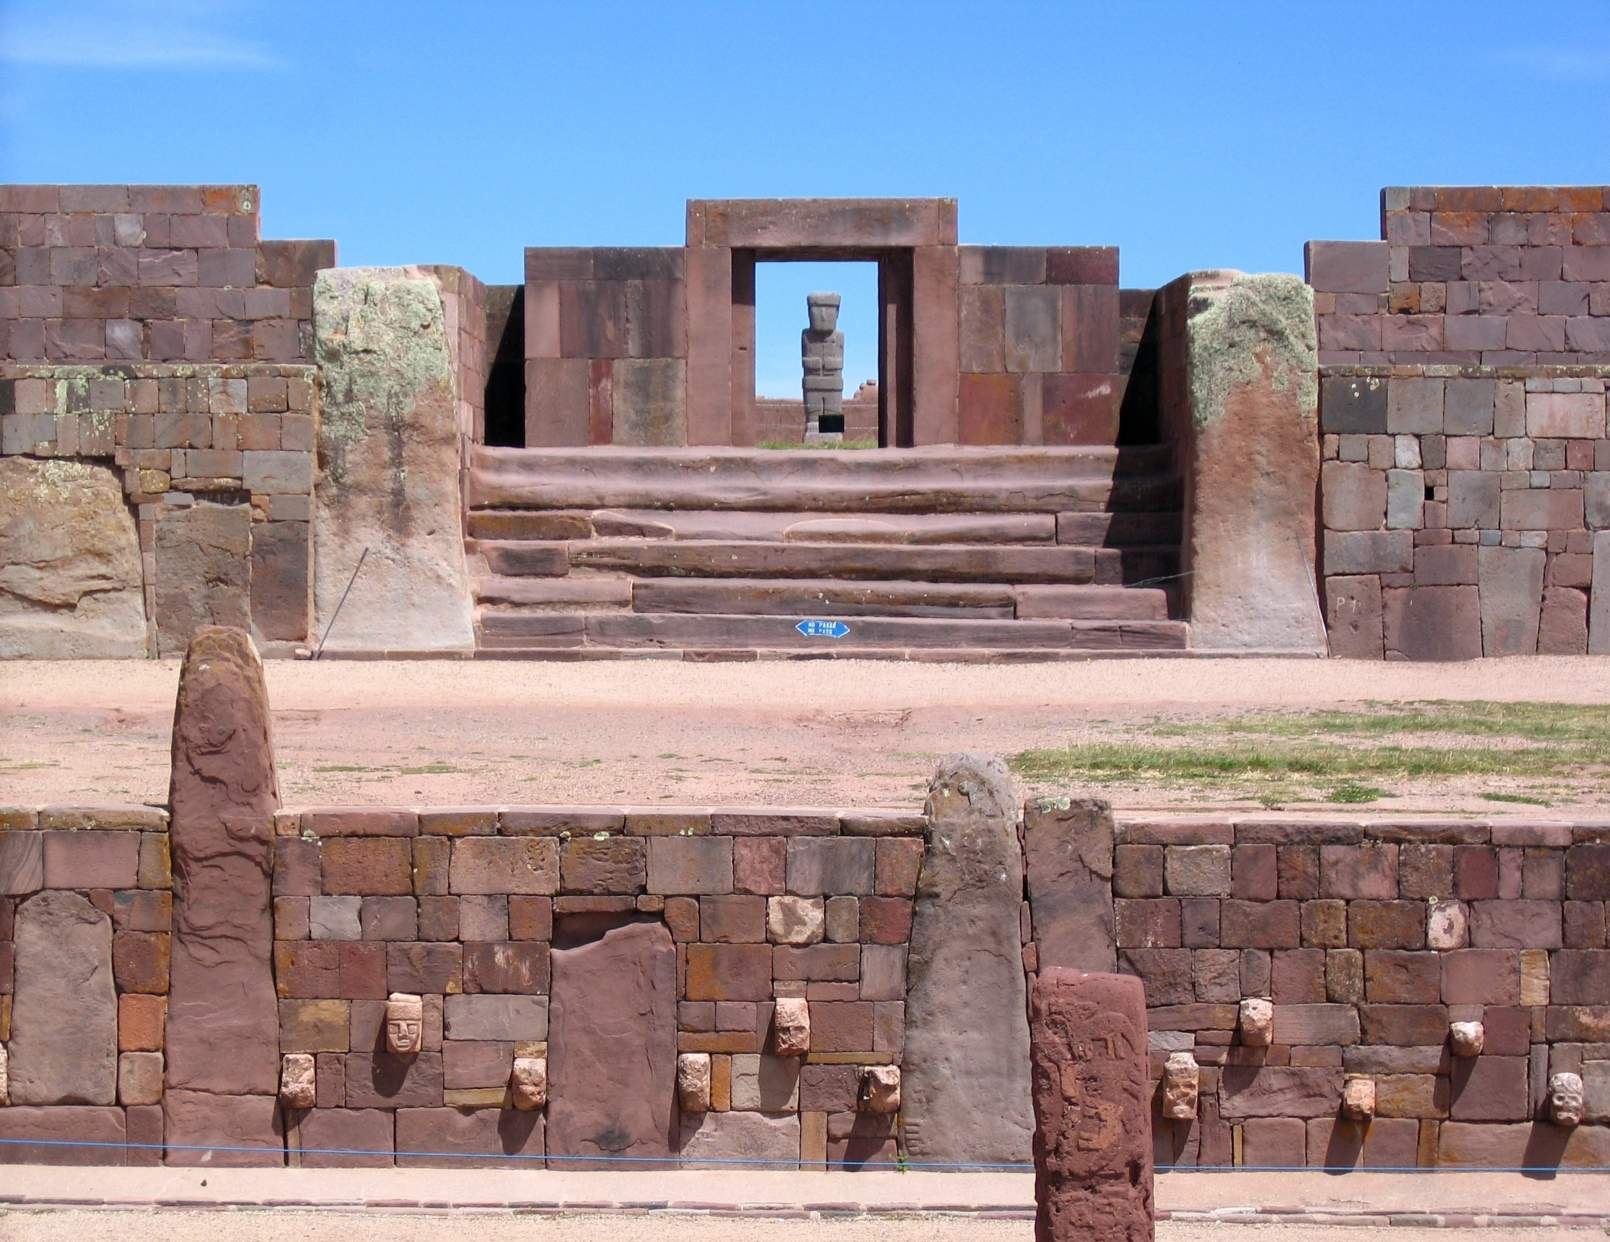 Tiwanaku ruins: Pre-Inca Kalasasaya & lower temples. The typical icon view, with the Ponce Monolith aligned with the Kalasasaya Temple main door. At equinoxes the Sun shines into the Ponce monolith. © Image Credit: Xenomanes | Licensed from DreamsTime.com (Editorial/Commercial Use Stock Photo, ID:28395032)